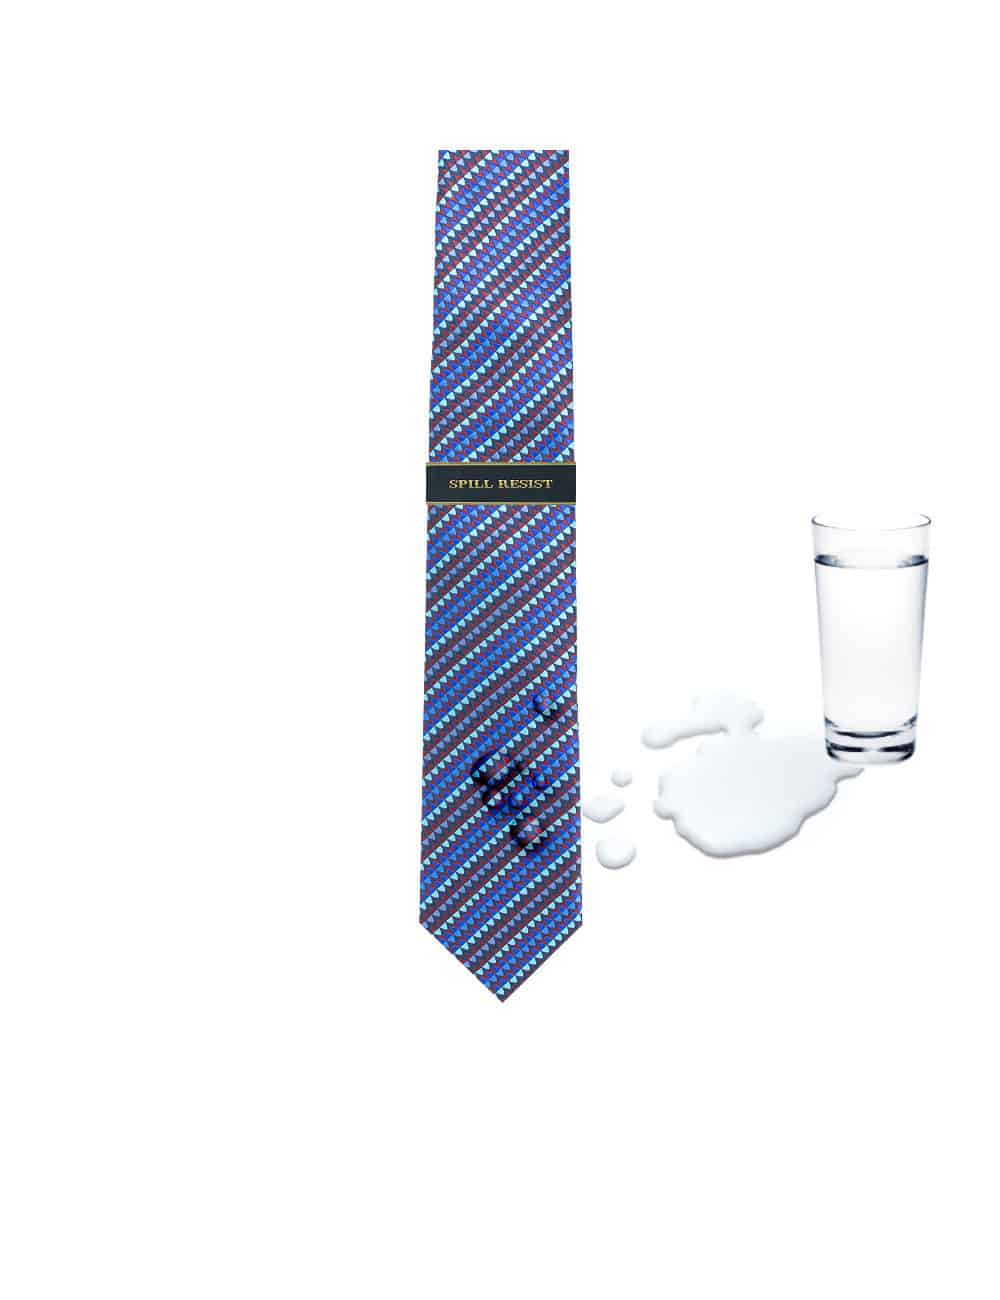 Turquoise and Blue Geometric Spill Resist Woven Necktie NT37.9